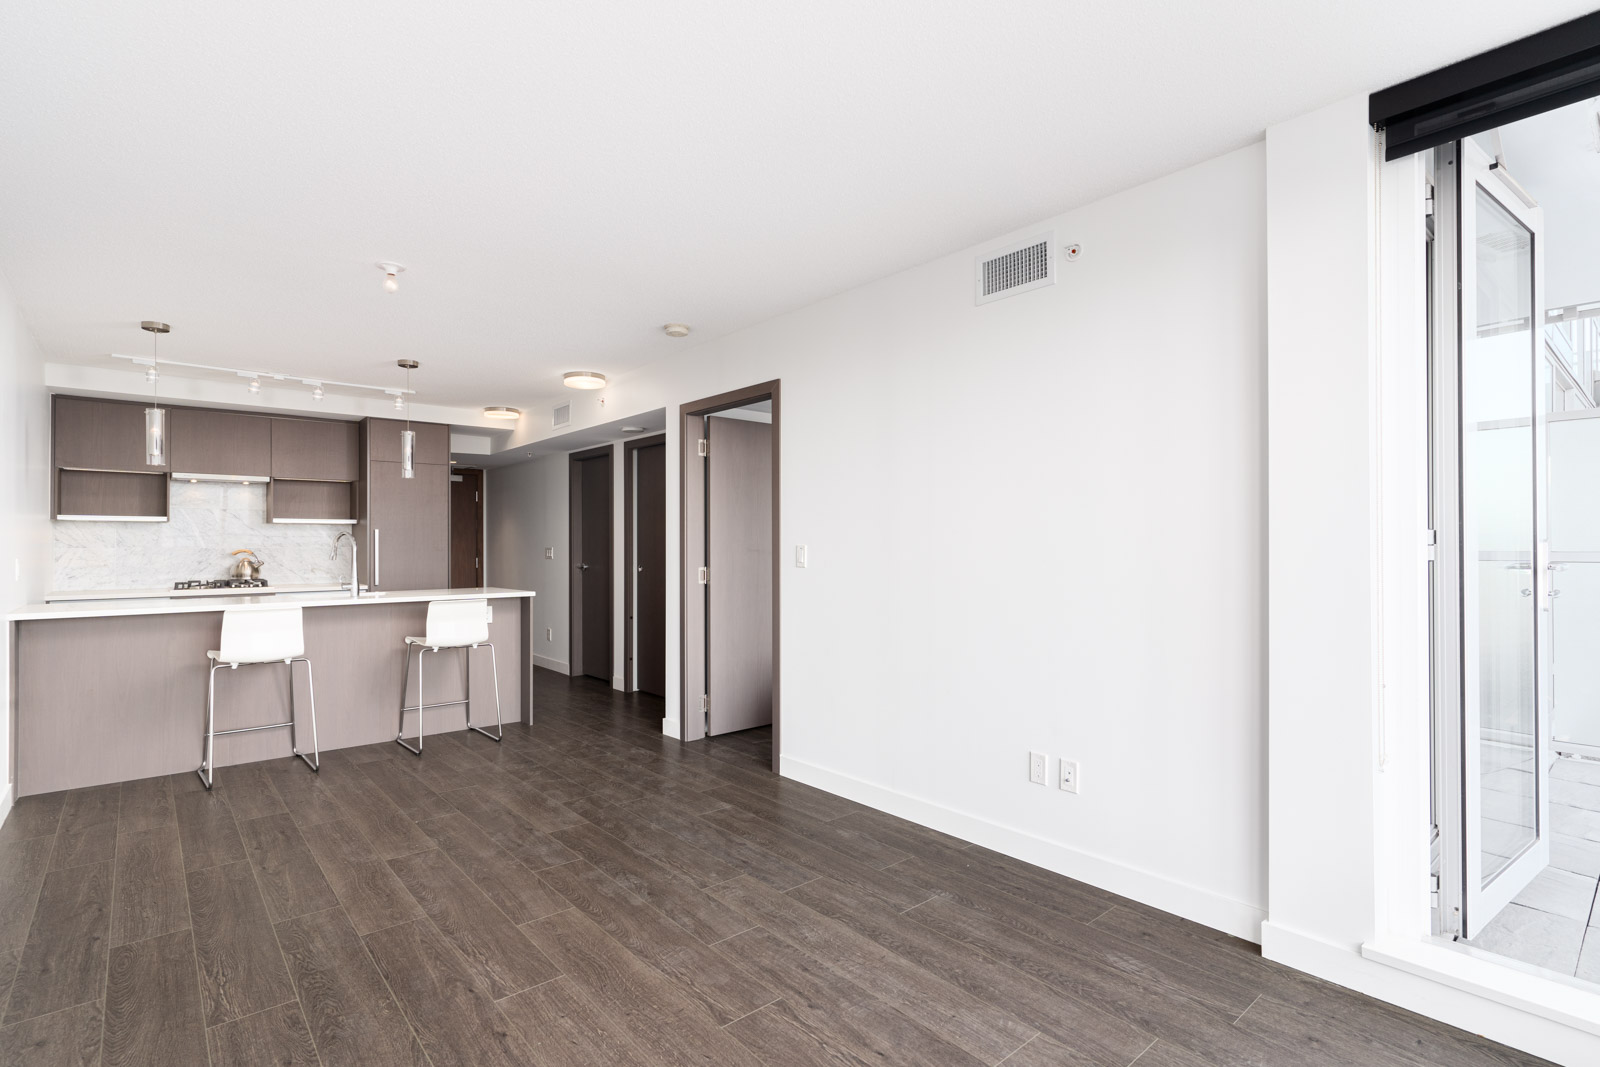 living room and kitchen area with laminate floors and white walls in a rental condo in richmond by birds nest properties